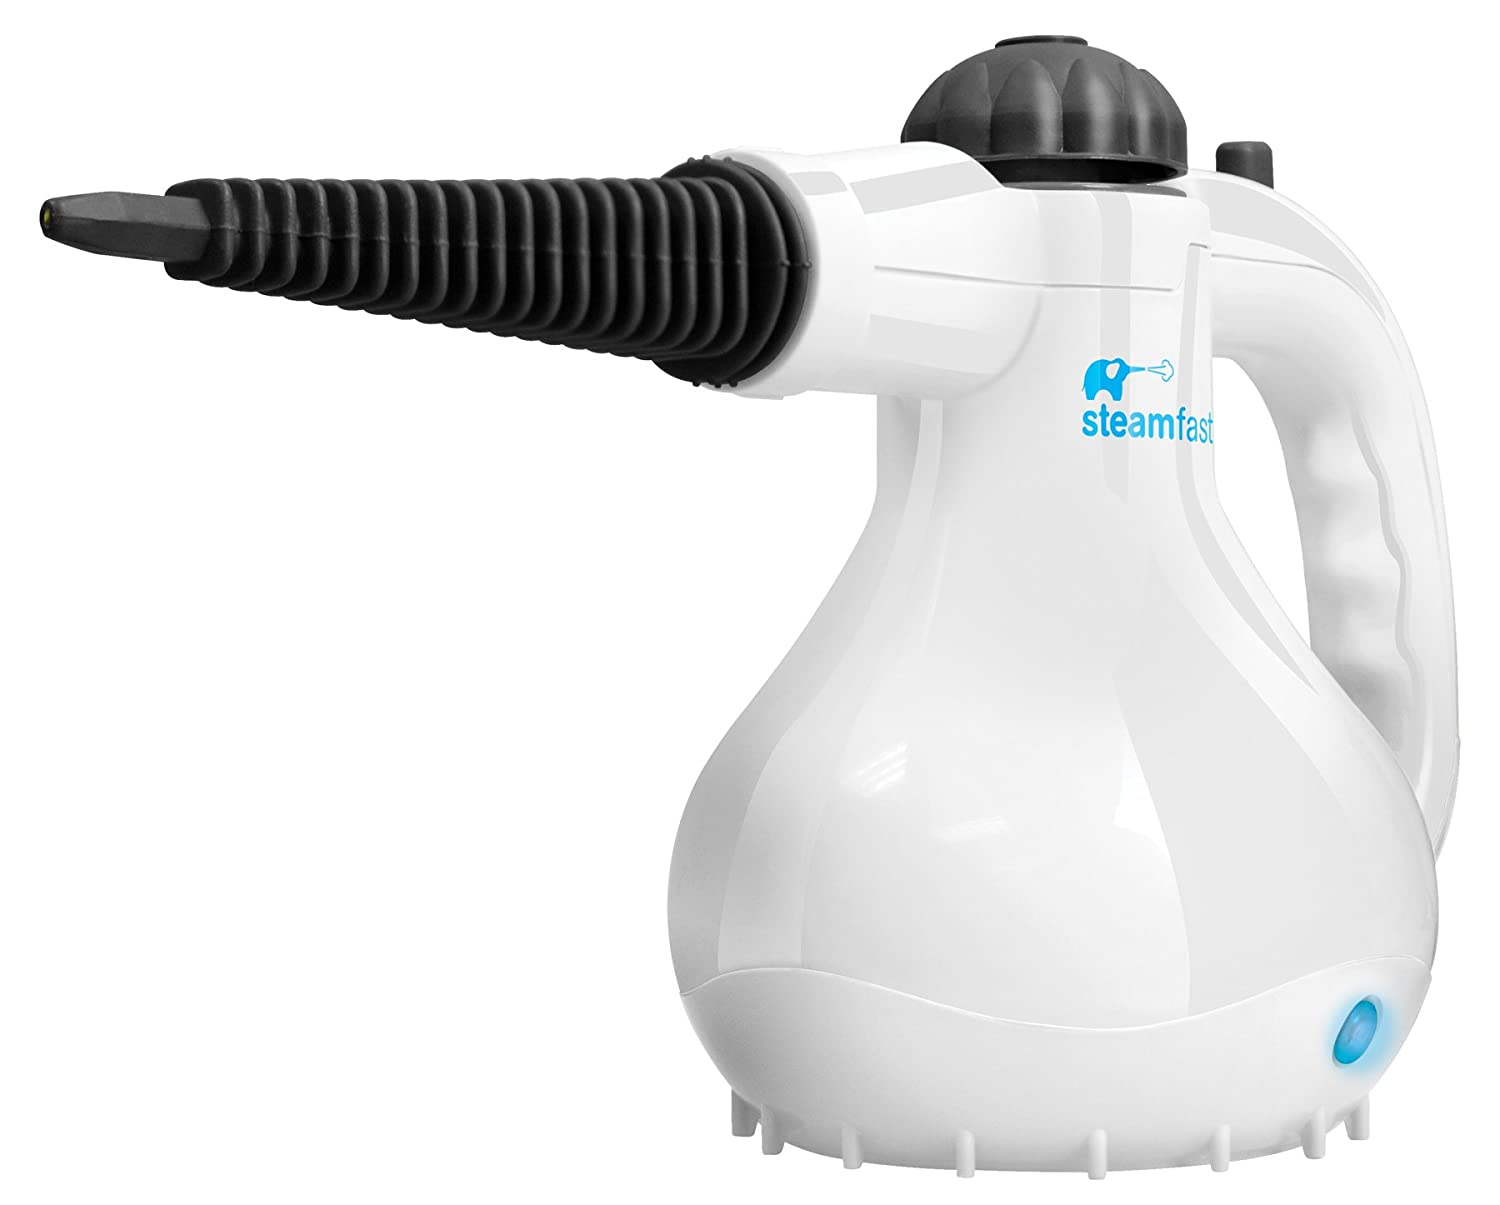 Amazon.com - SteamFast SF-226 Handheld Steam Cleaner - Electric ...